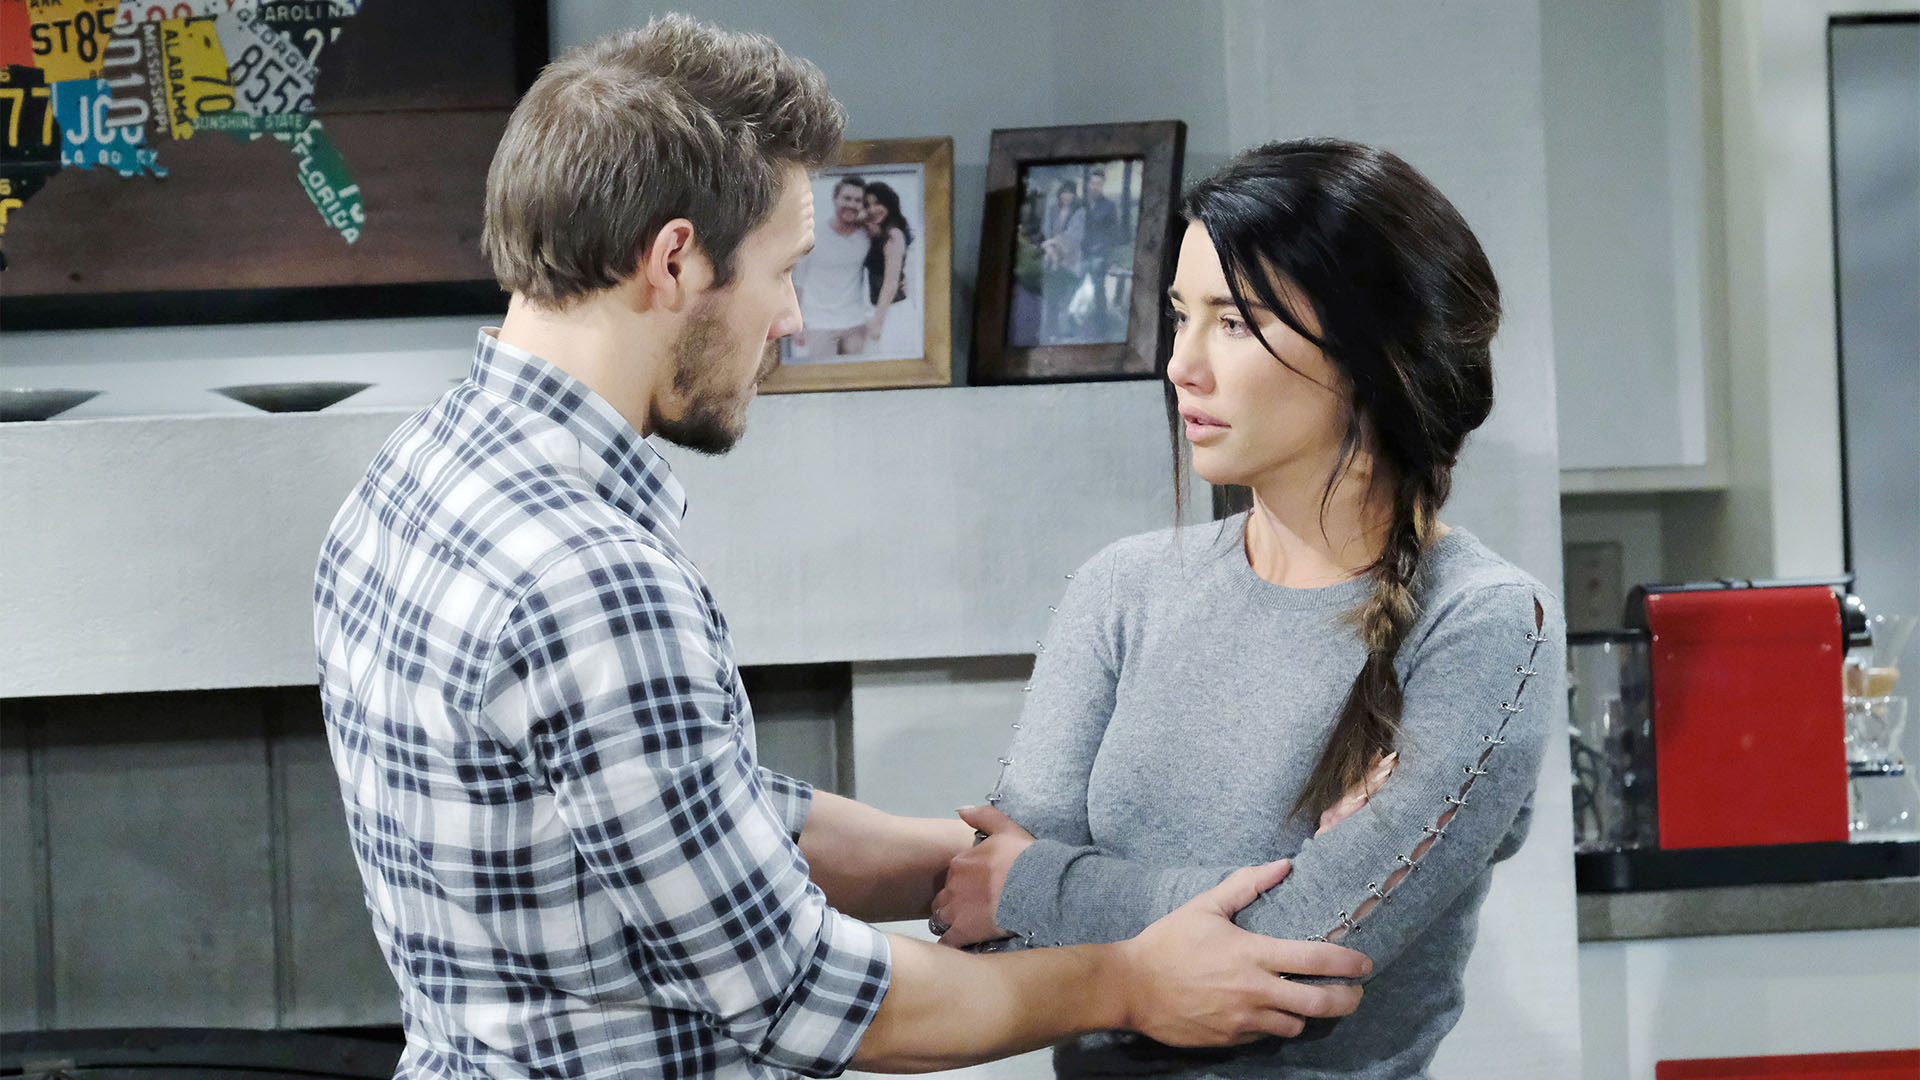 The more Liam asks for Steffy's forgiveness, the more anxiety ridden Steffy becomes.